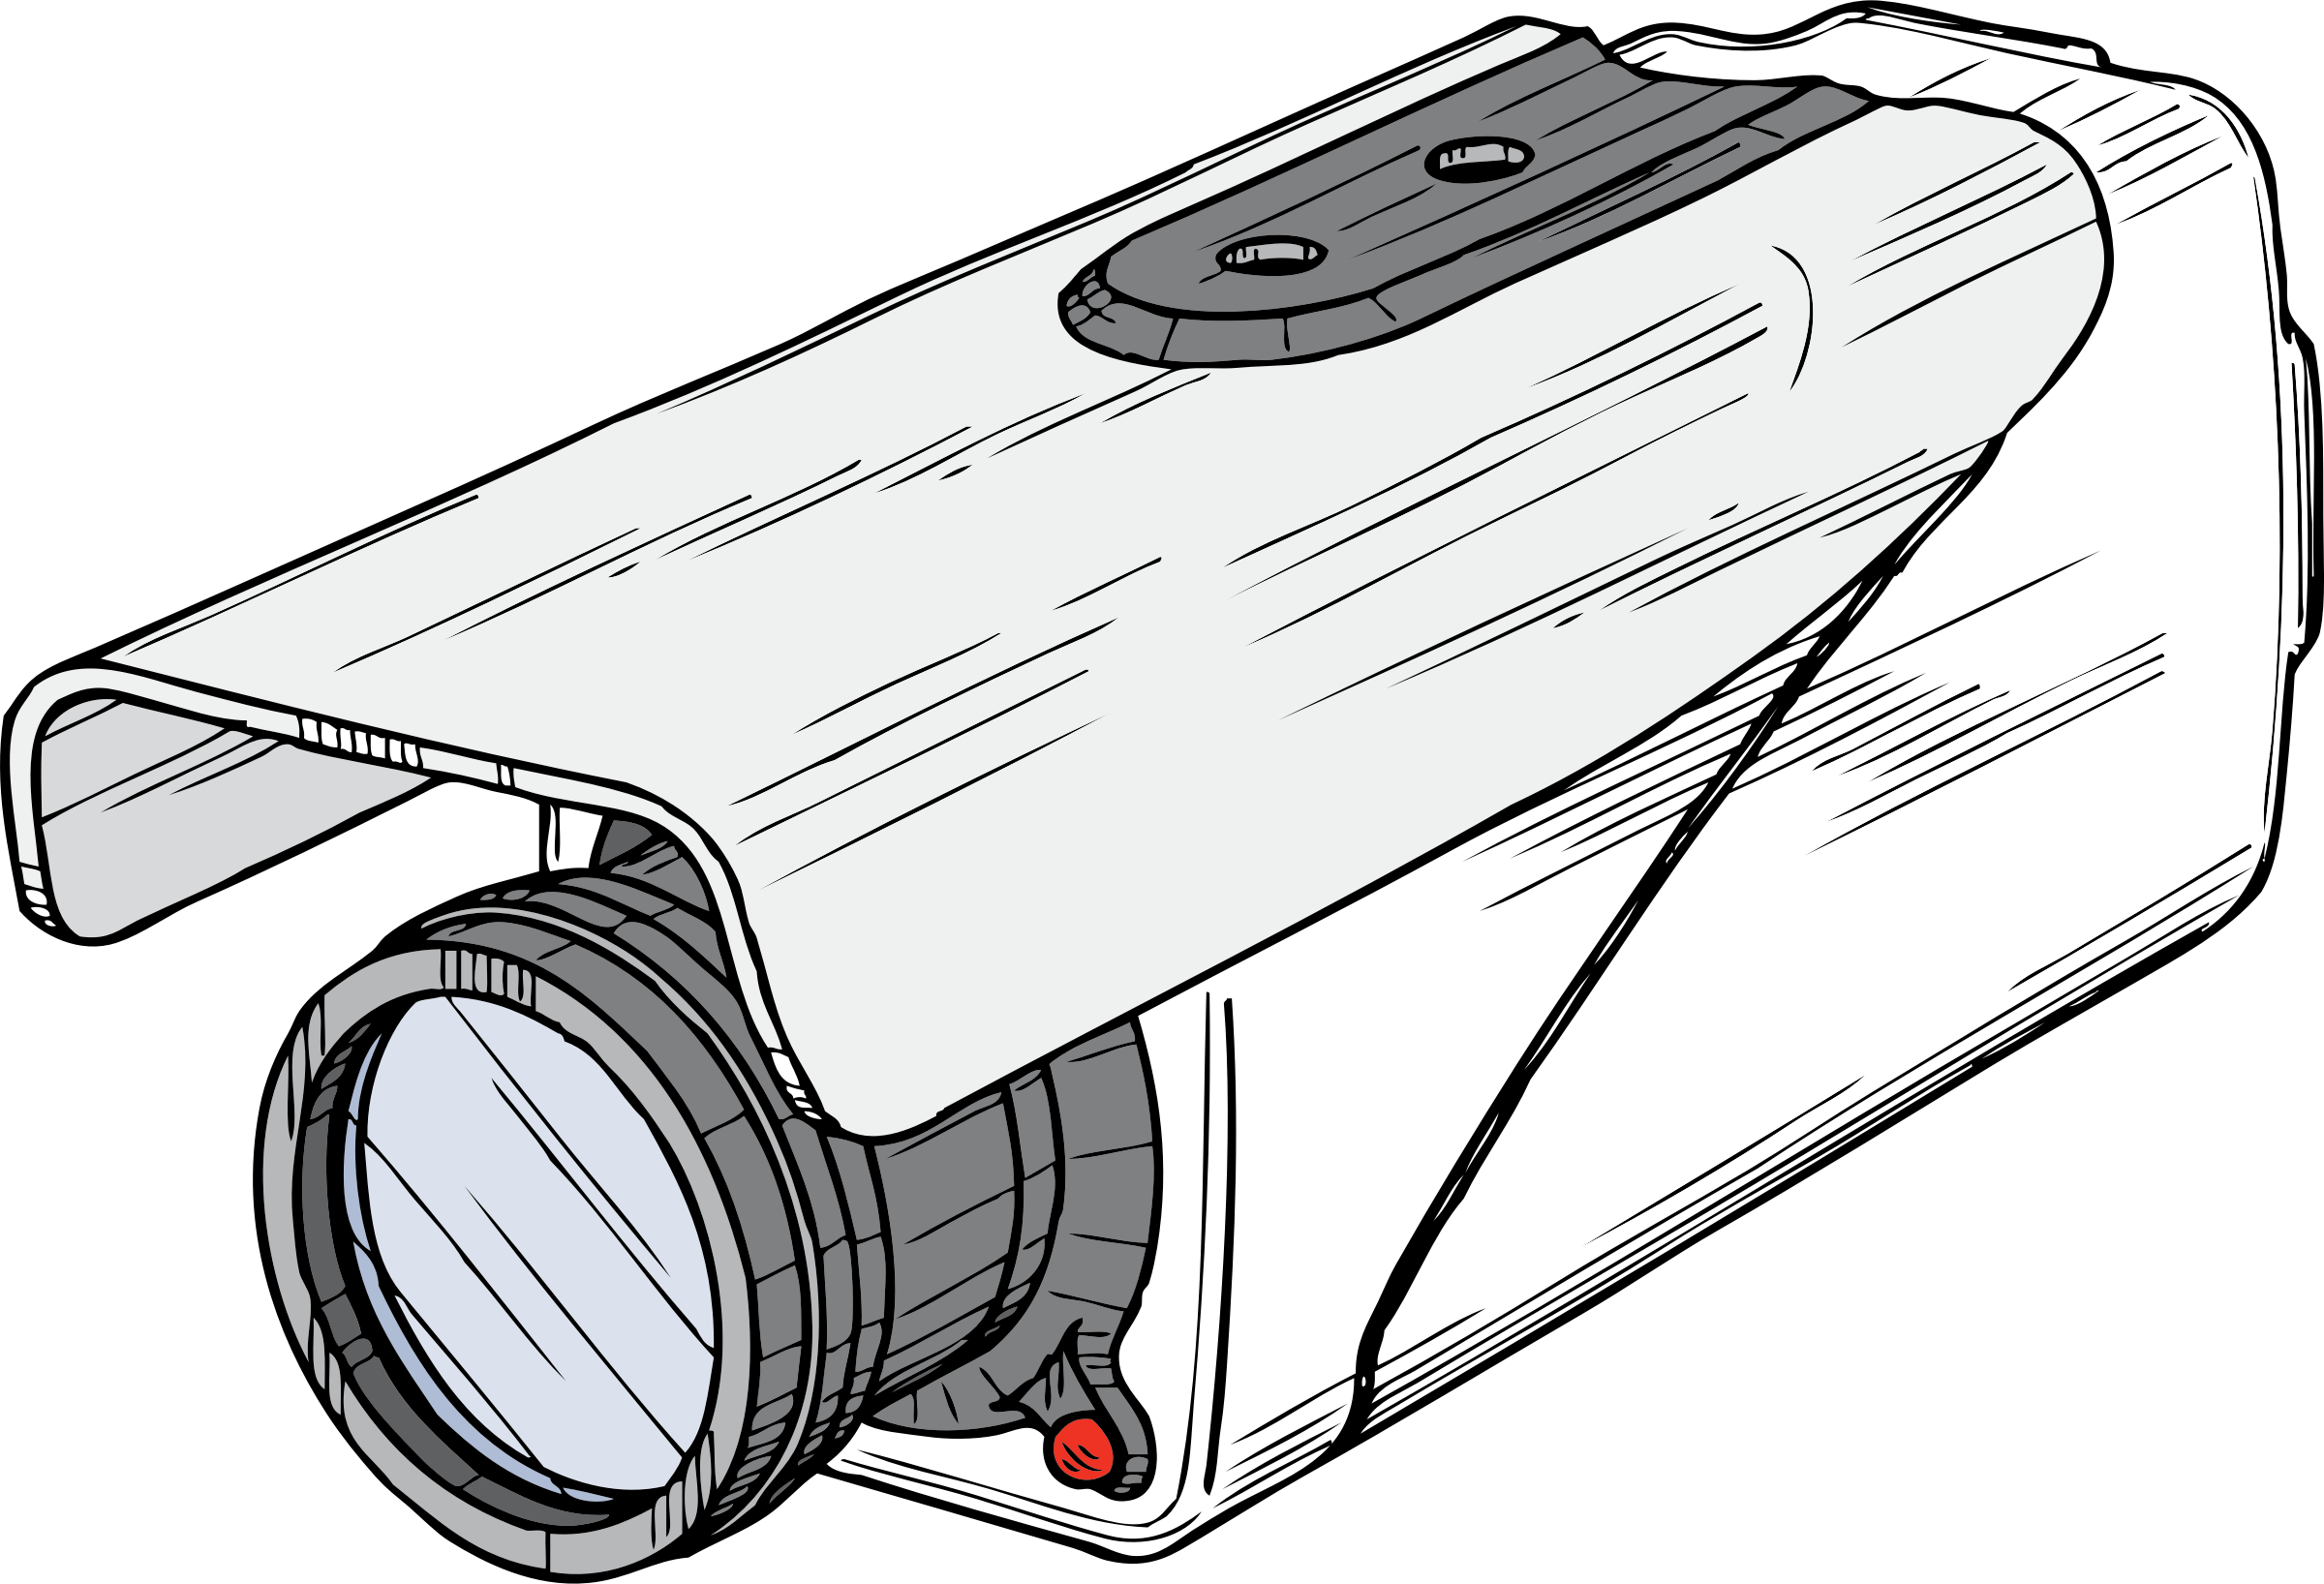 2400x1636 clipart surveillance camera huge freebie! download